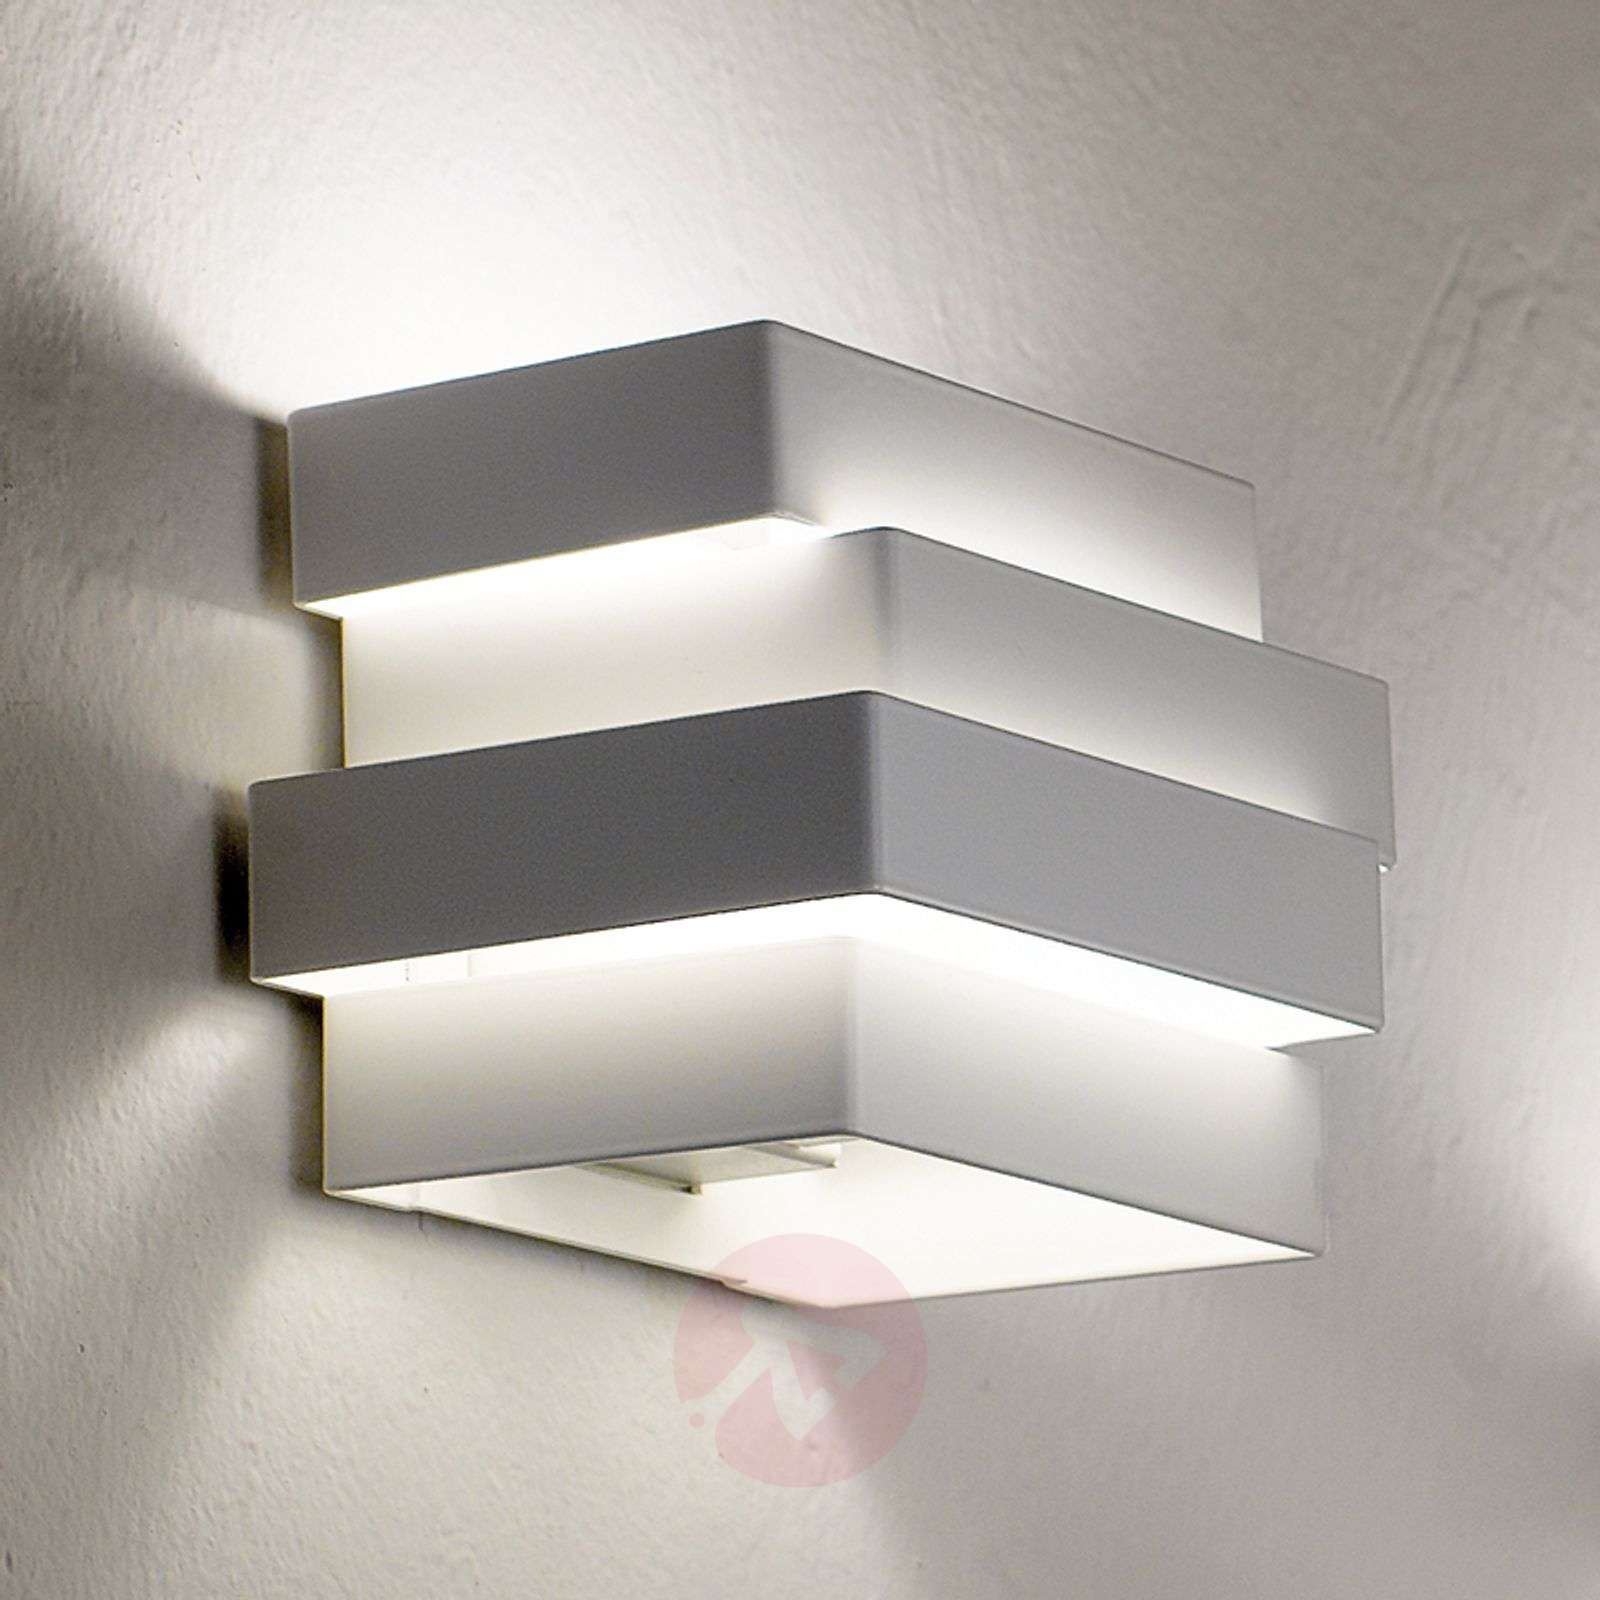 Applique a LED Escape Cube bianca-5501159-01